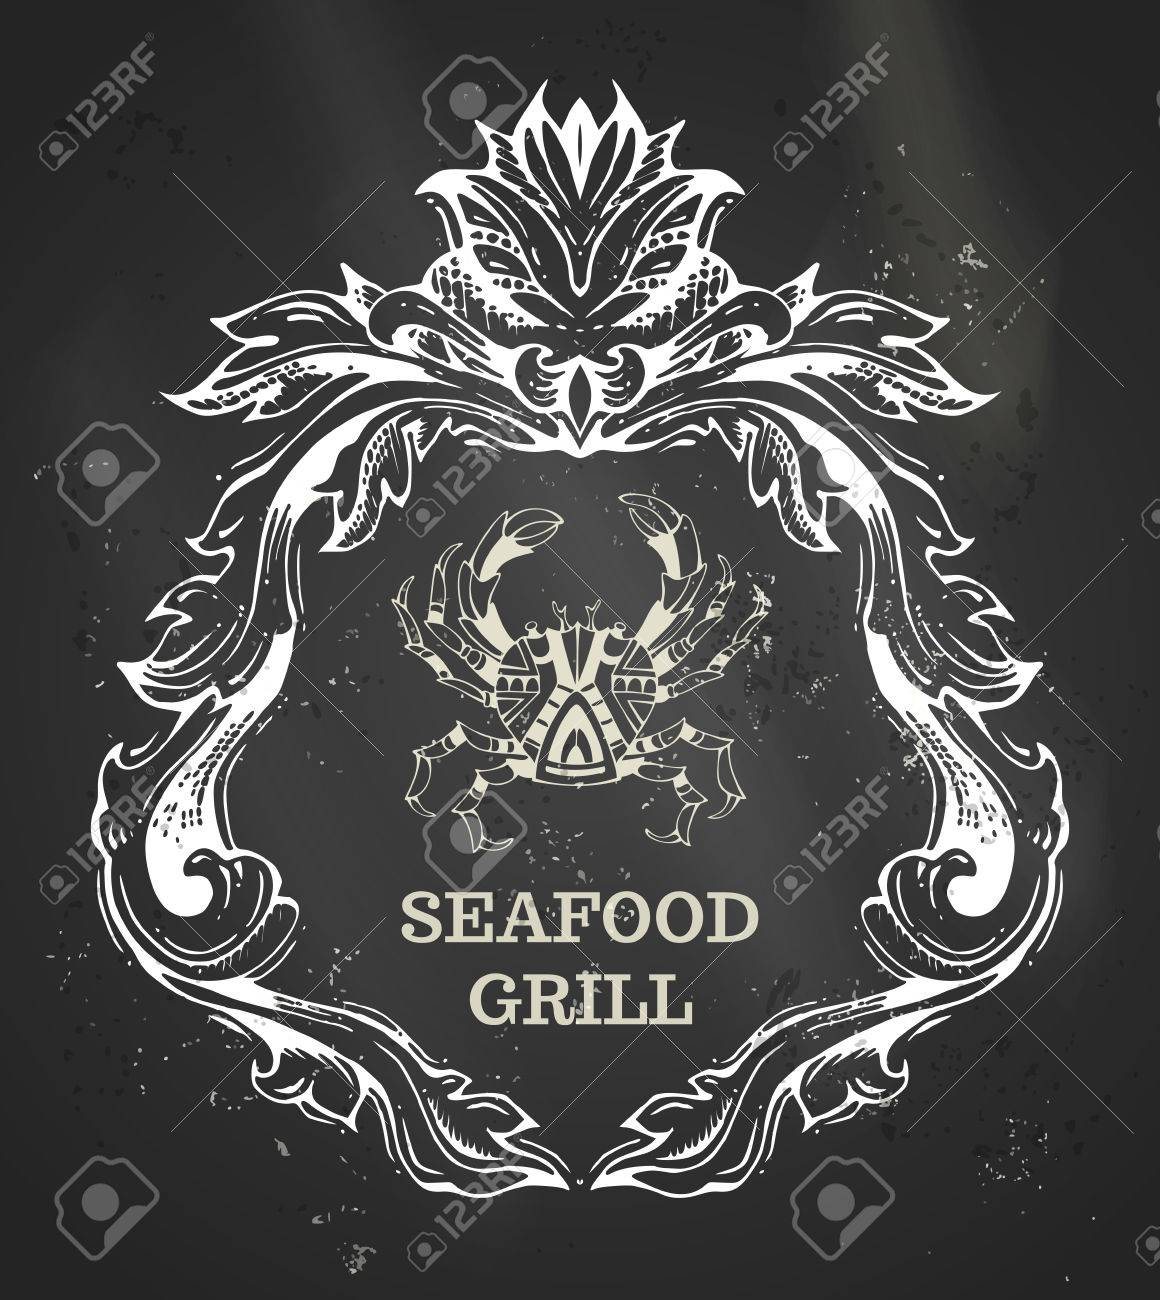 vector chalk seafood and grill menu template ornate doodles